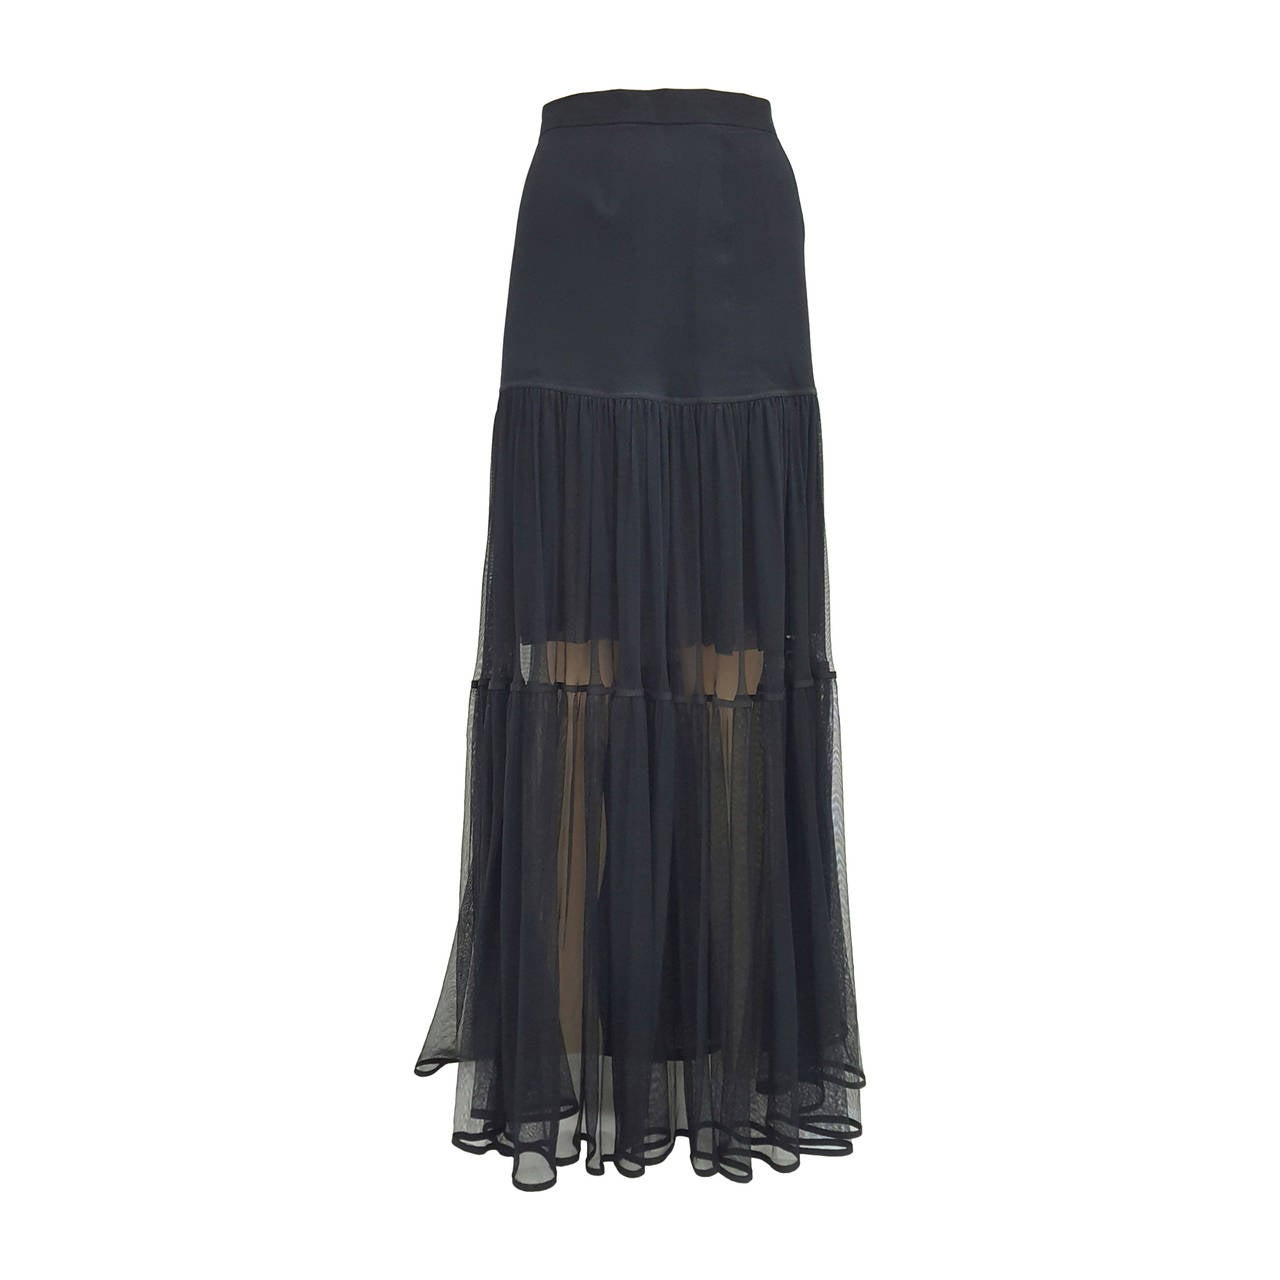 CHANEL Black Woven Silk Dramatic Long Flowing Semi Sheer Skirt.